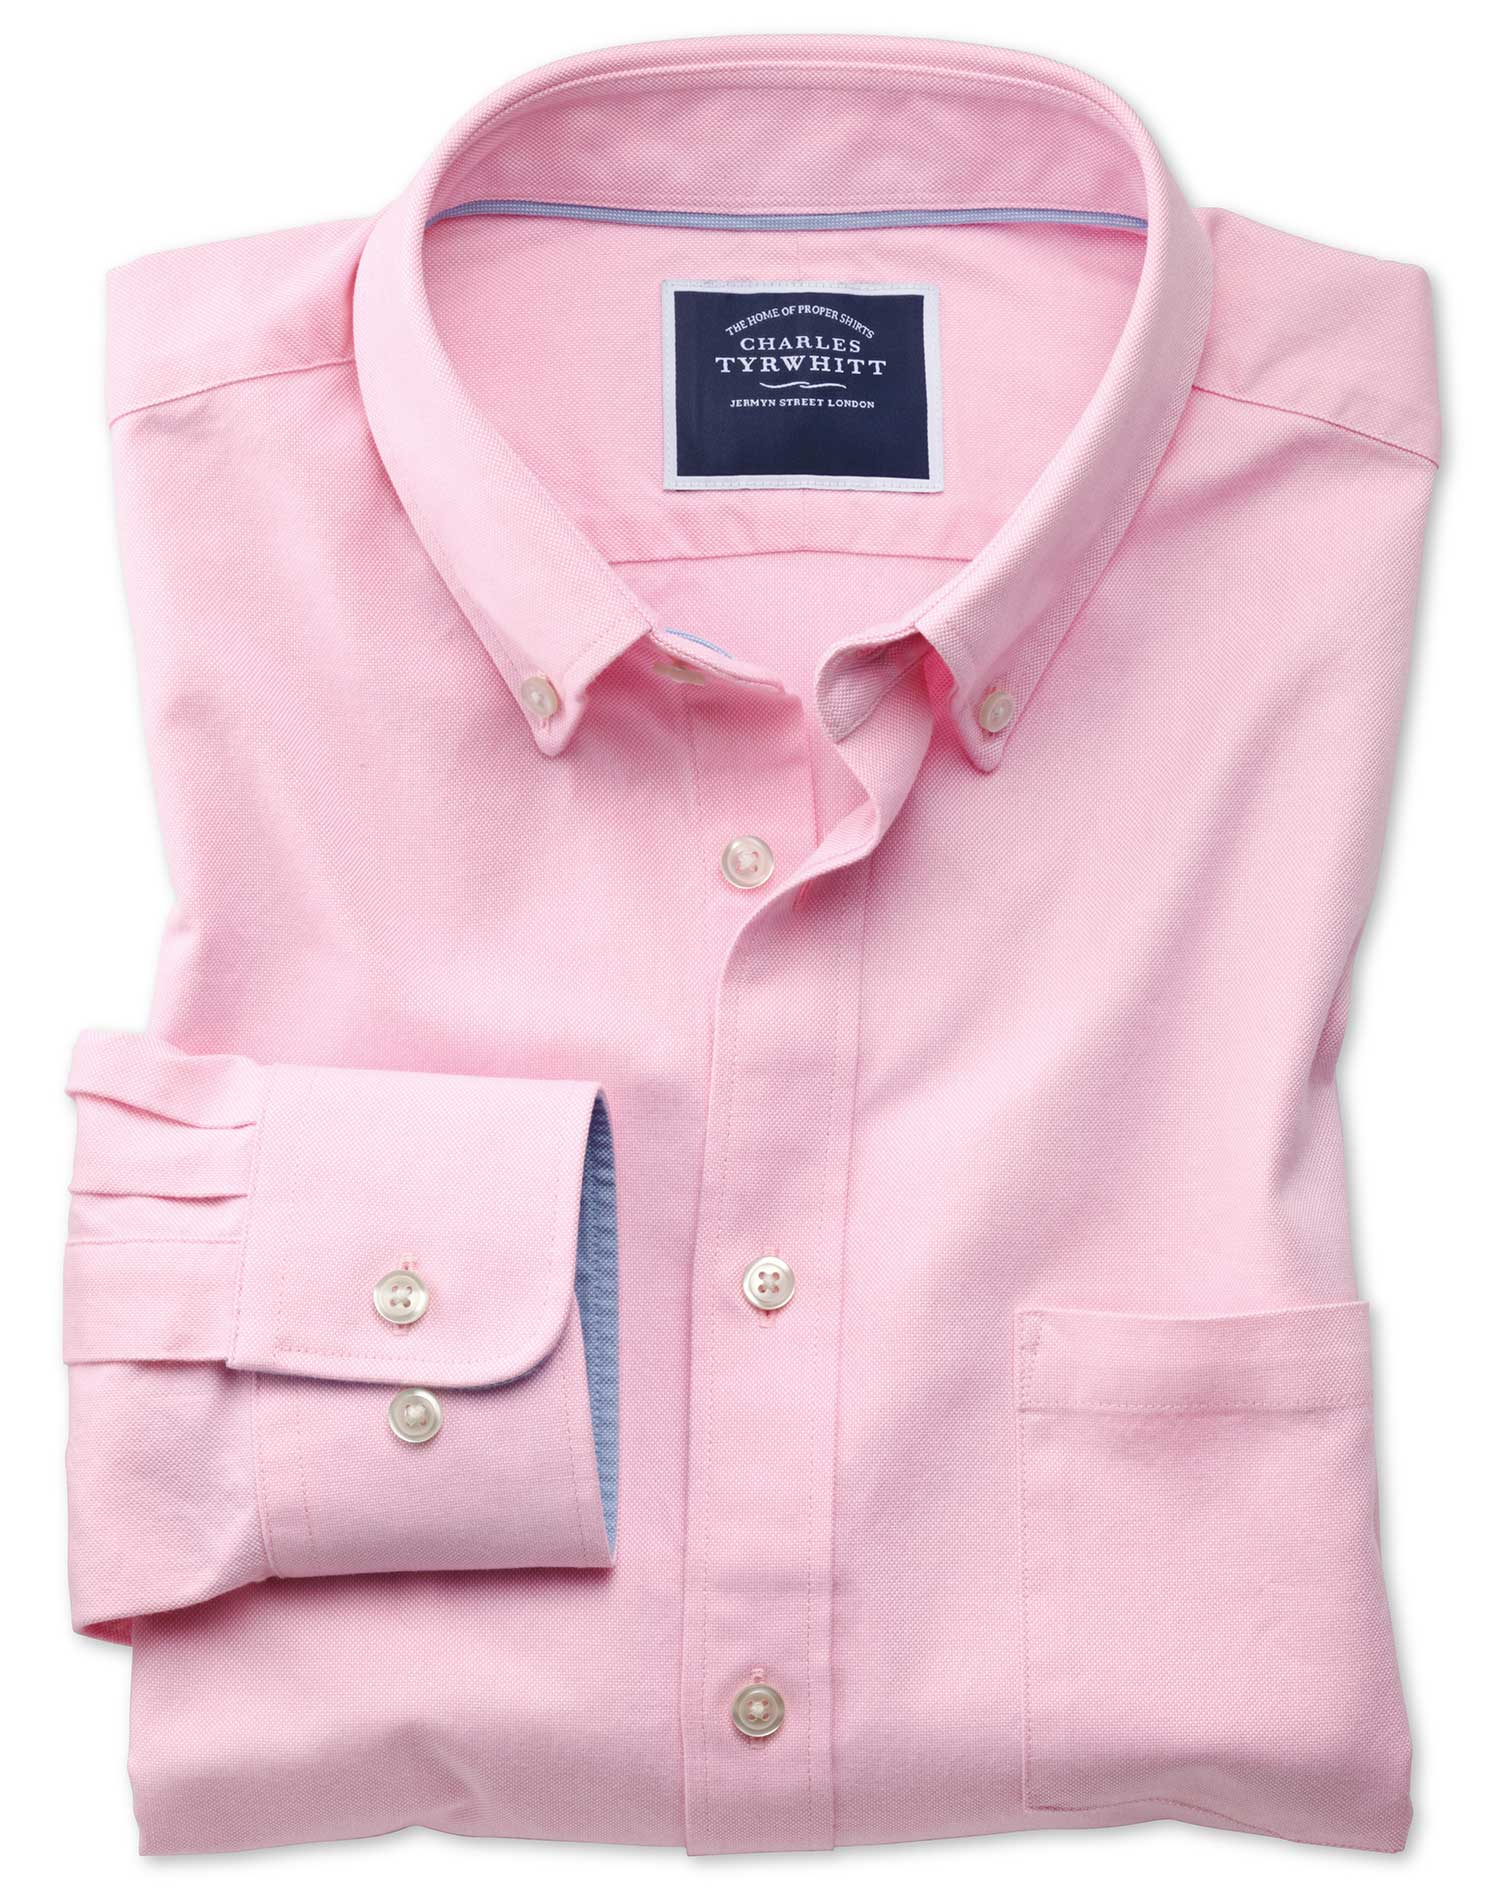 Slim fit button down washed oxford plain light pink shirt for Pastel pink button down shirt